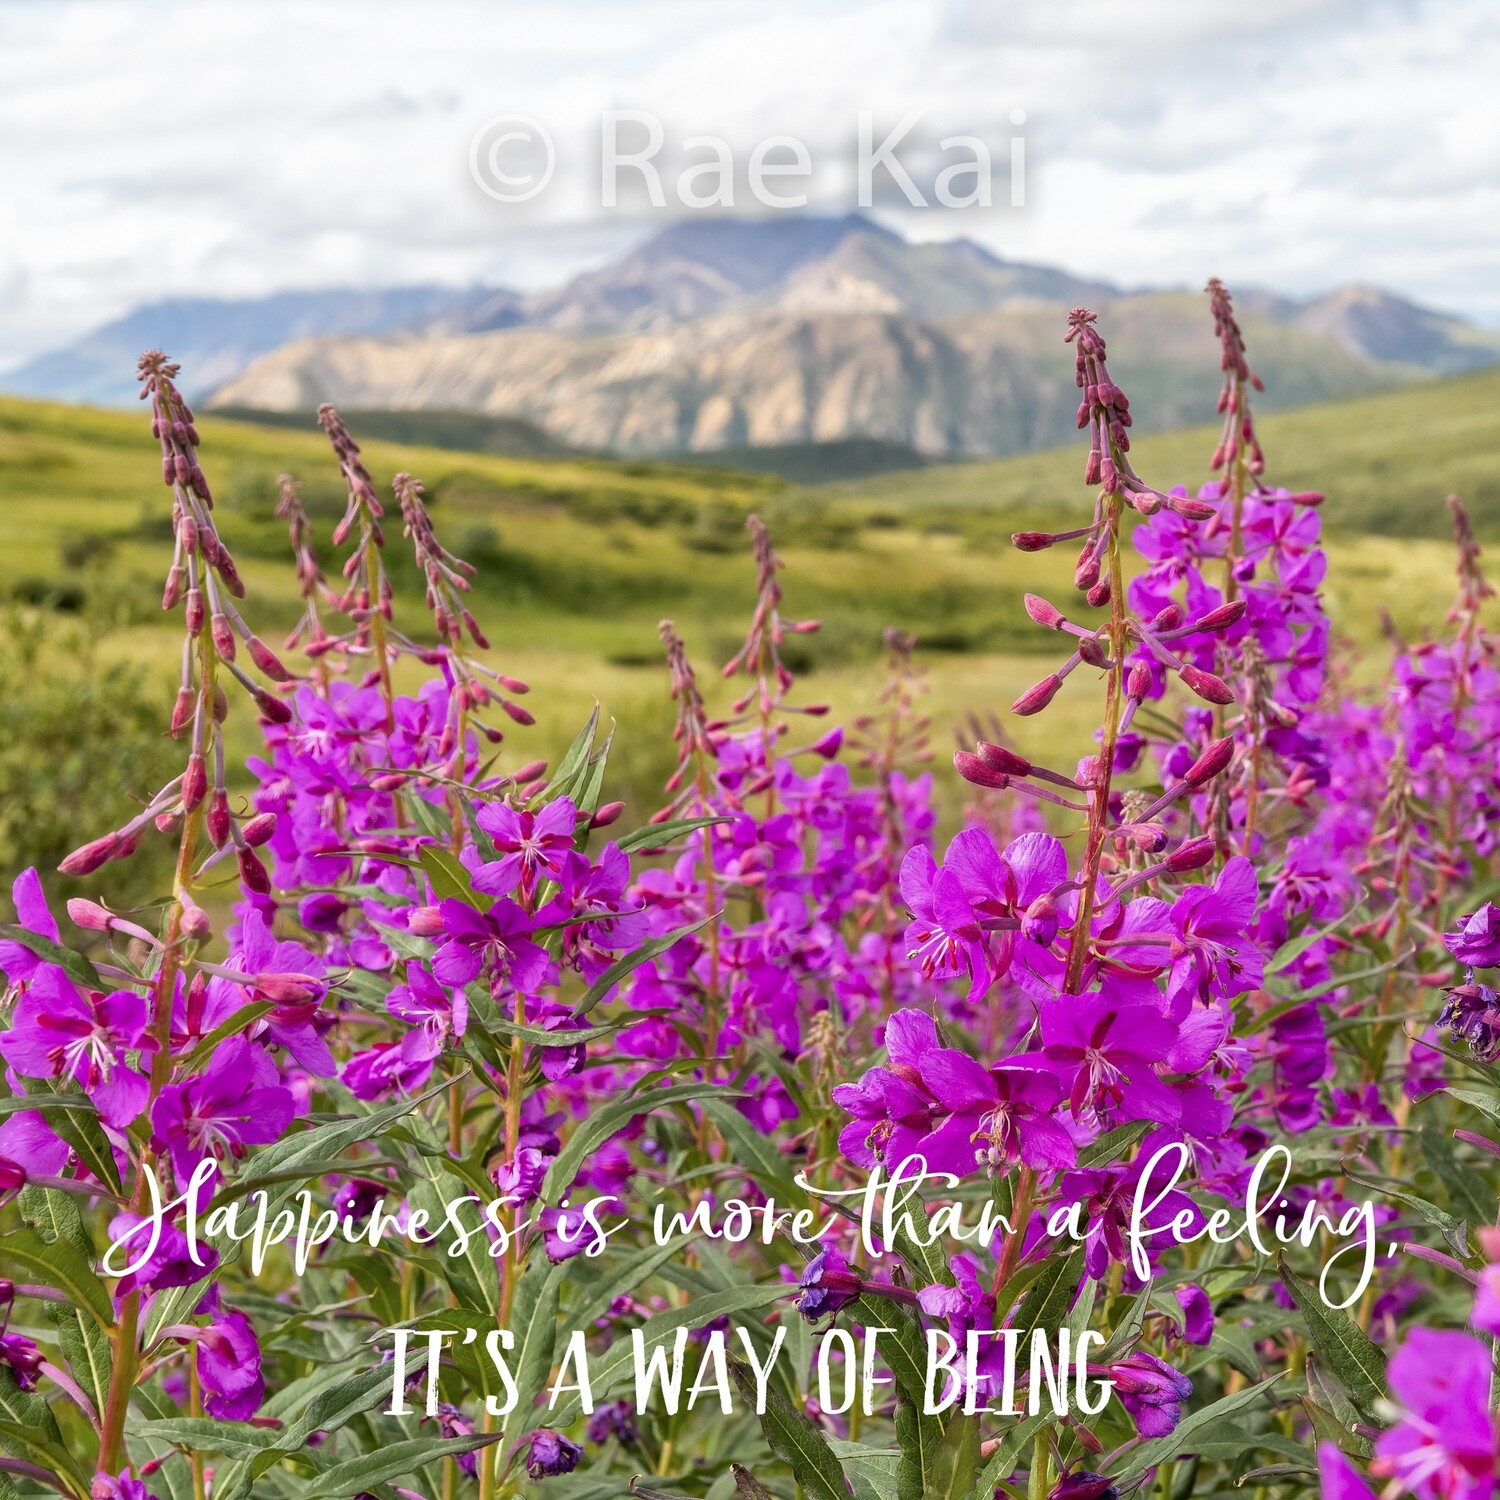 Happiness is More than a Feeling-Inspirational Square Photo